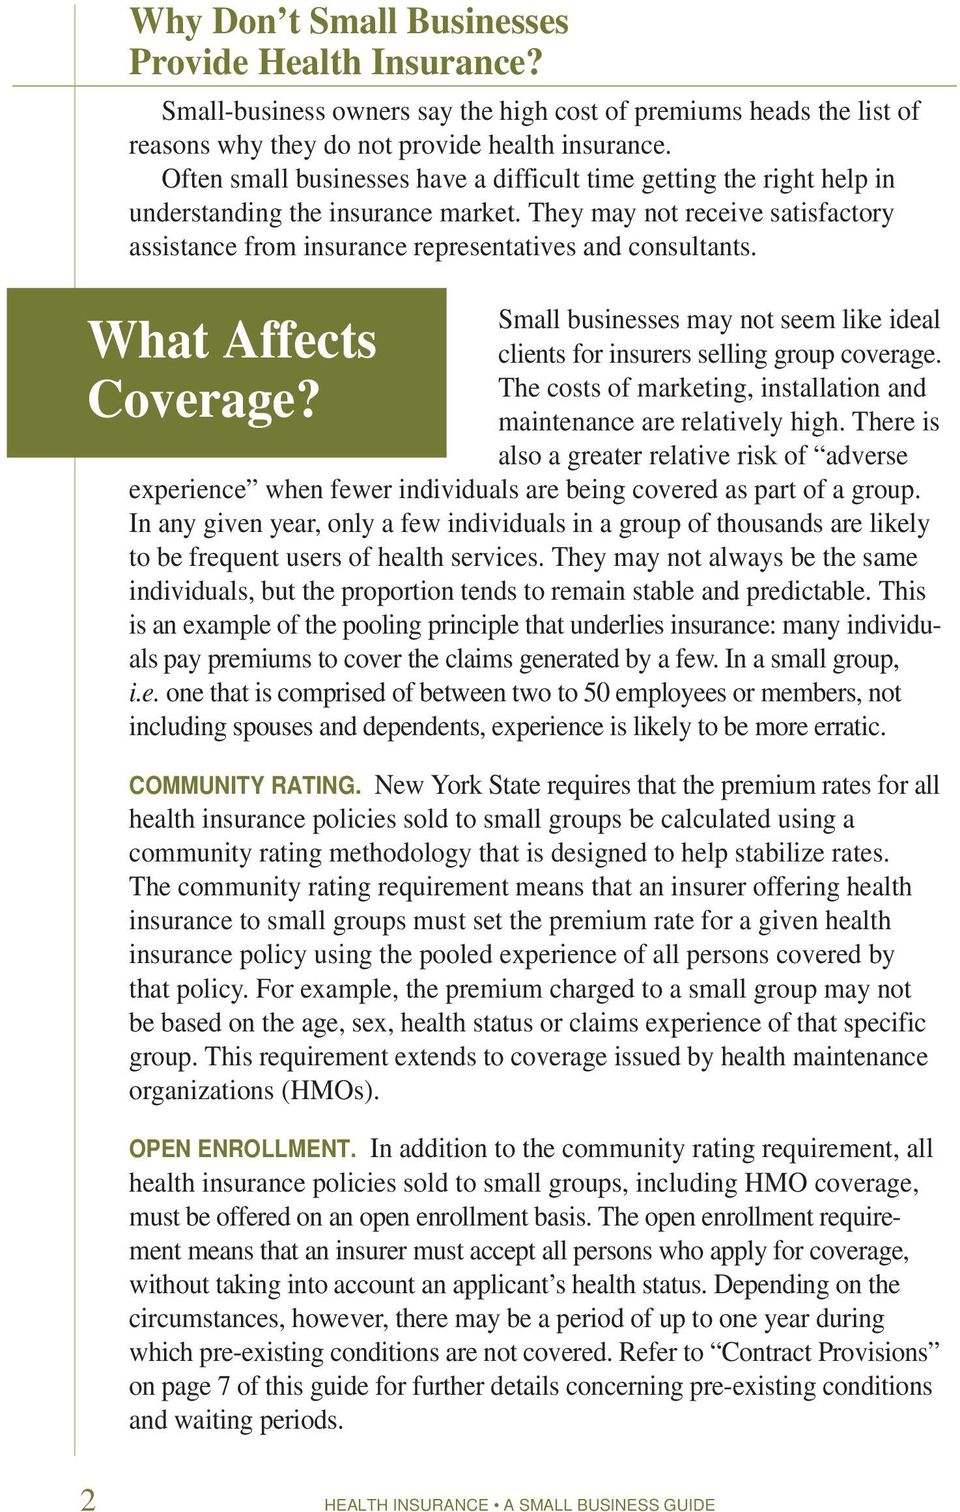 What Affects Coverage? Small businesses may not seem like ideal clients for insurers selling group coverage. The costs of marketing, installation and maintenance are relatively high.